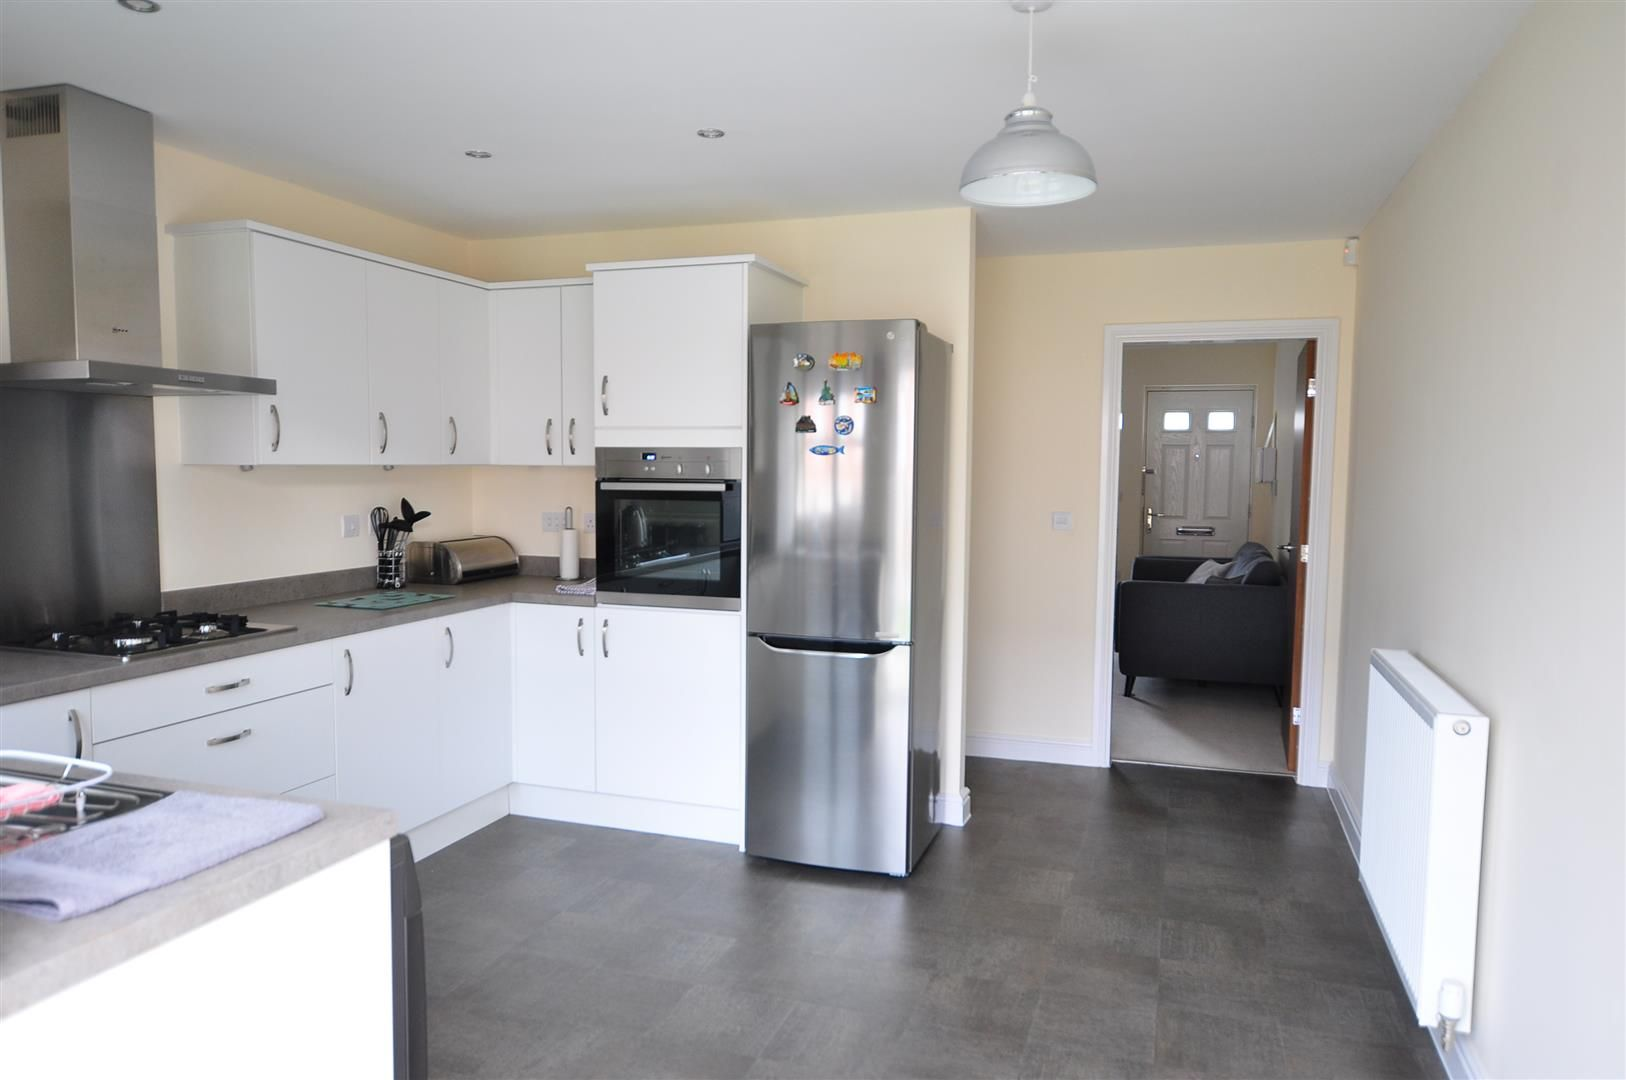 2 bed end-of-terrace for sale 6